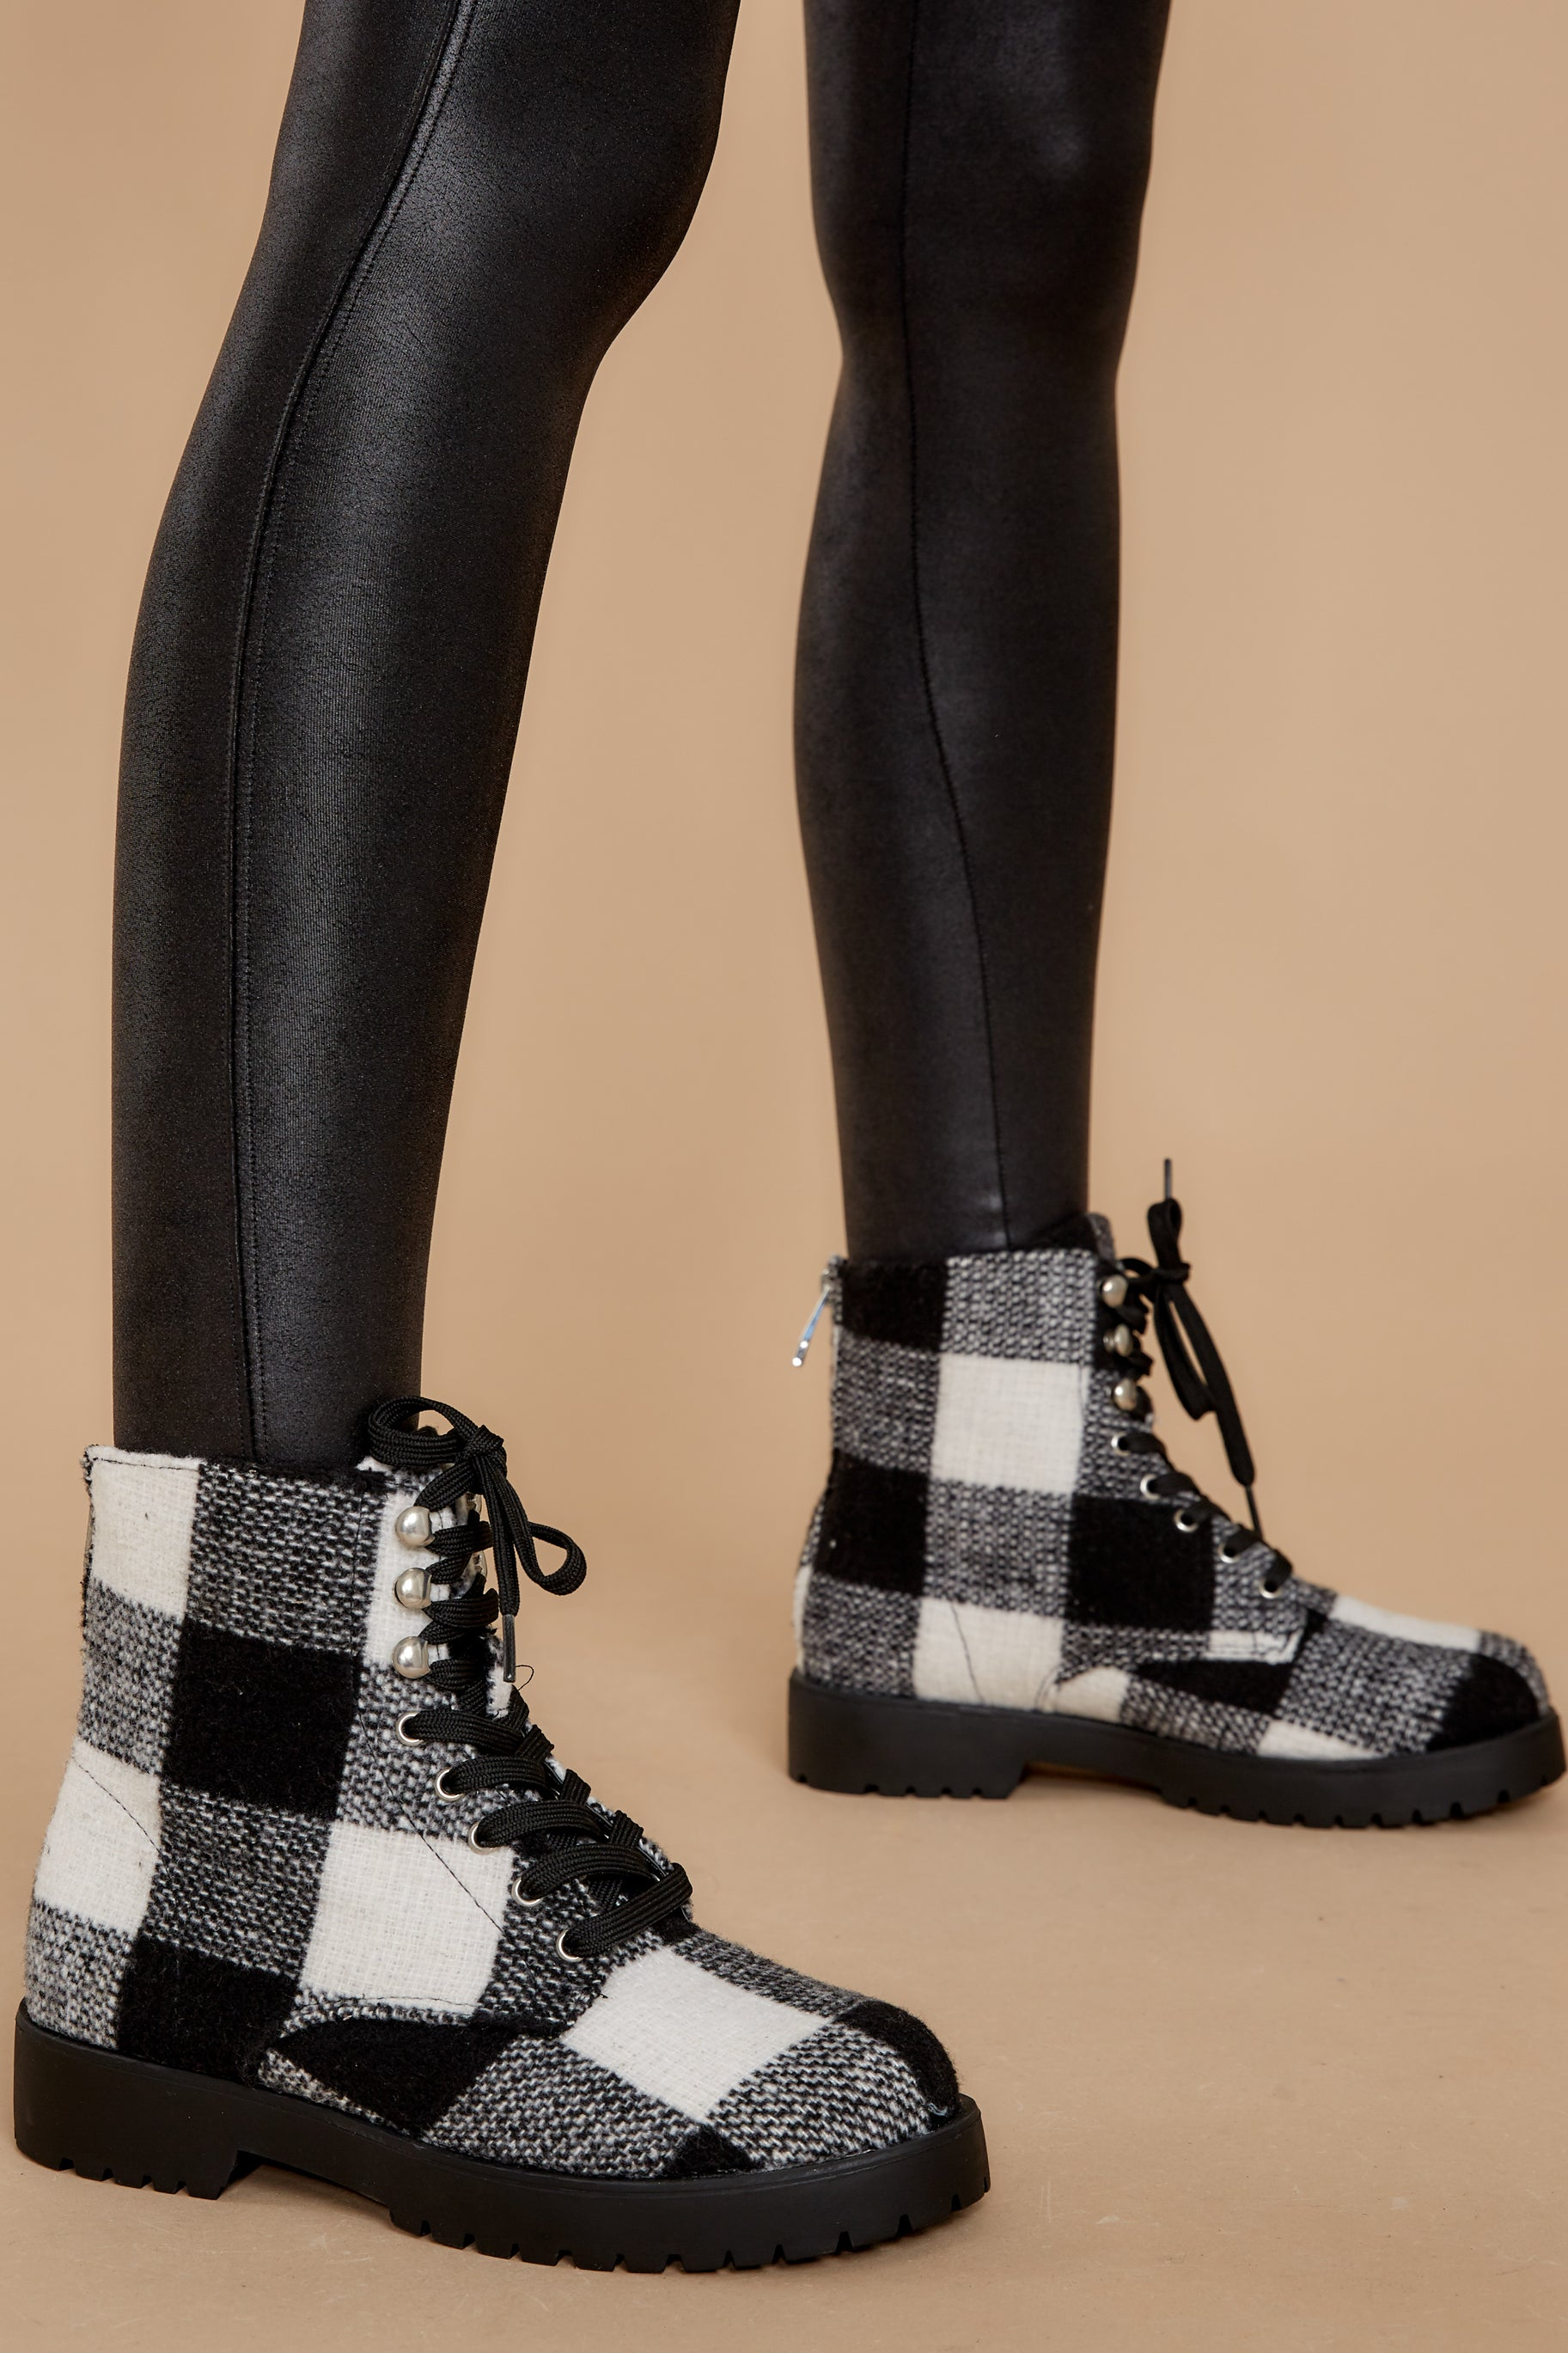 1 Everything My Way Black Buffalo Plaid Lace Up Boots at reddress.com